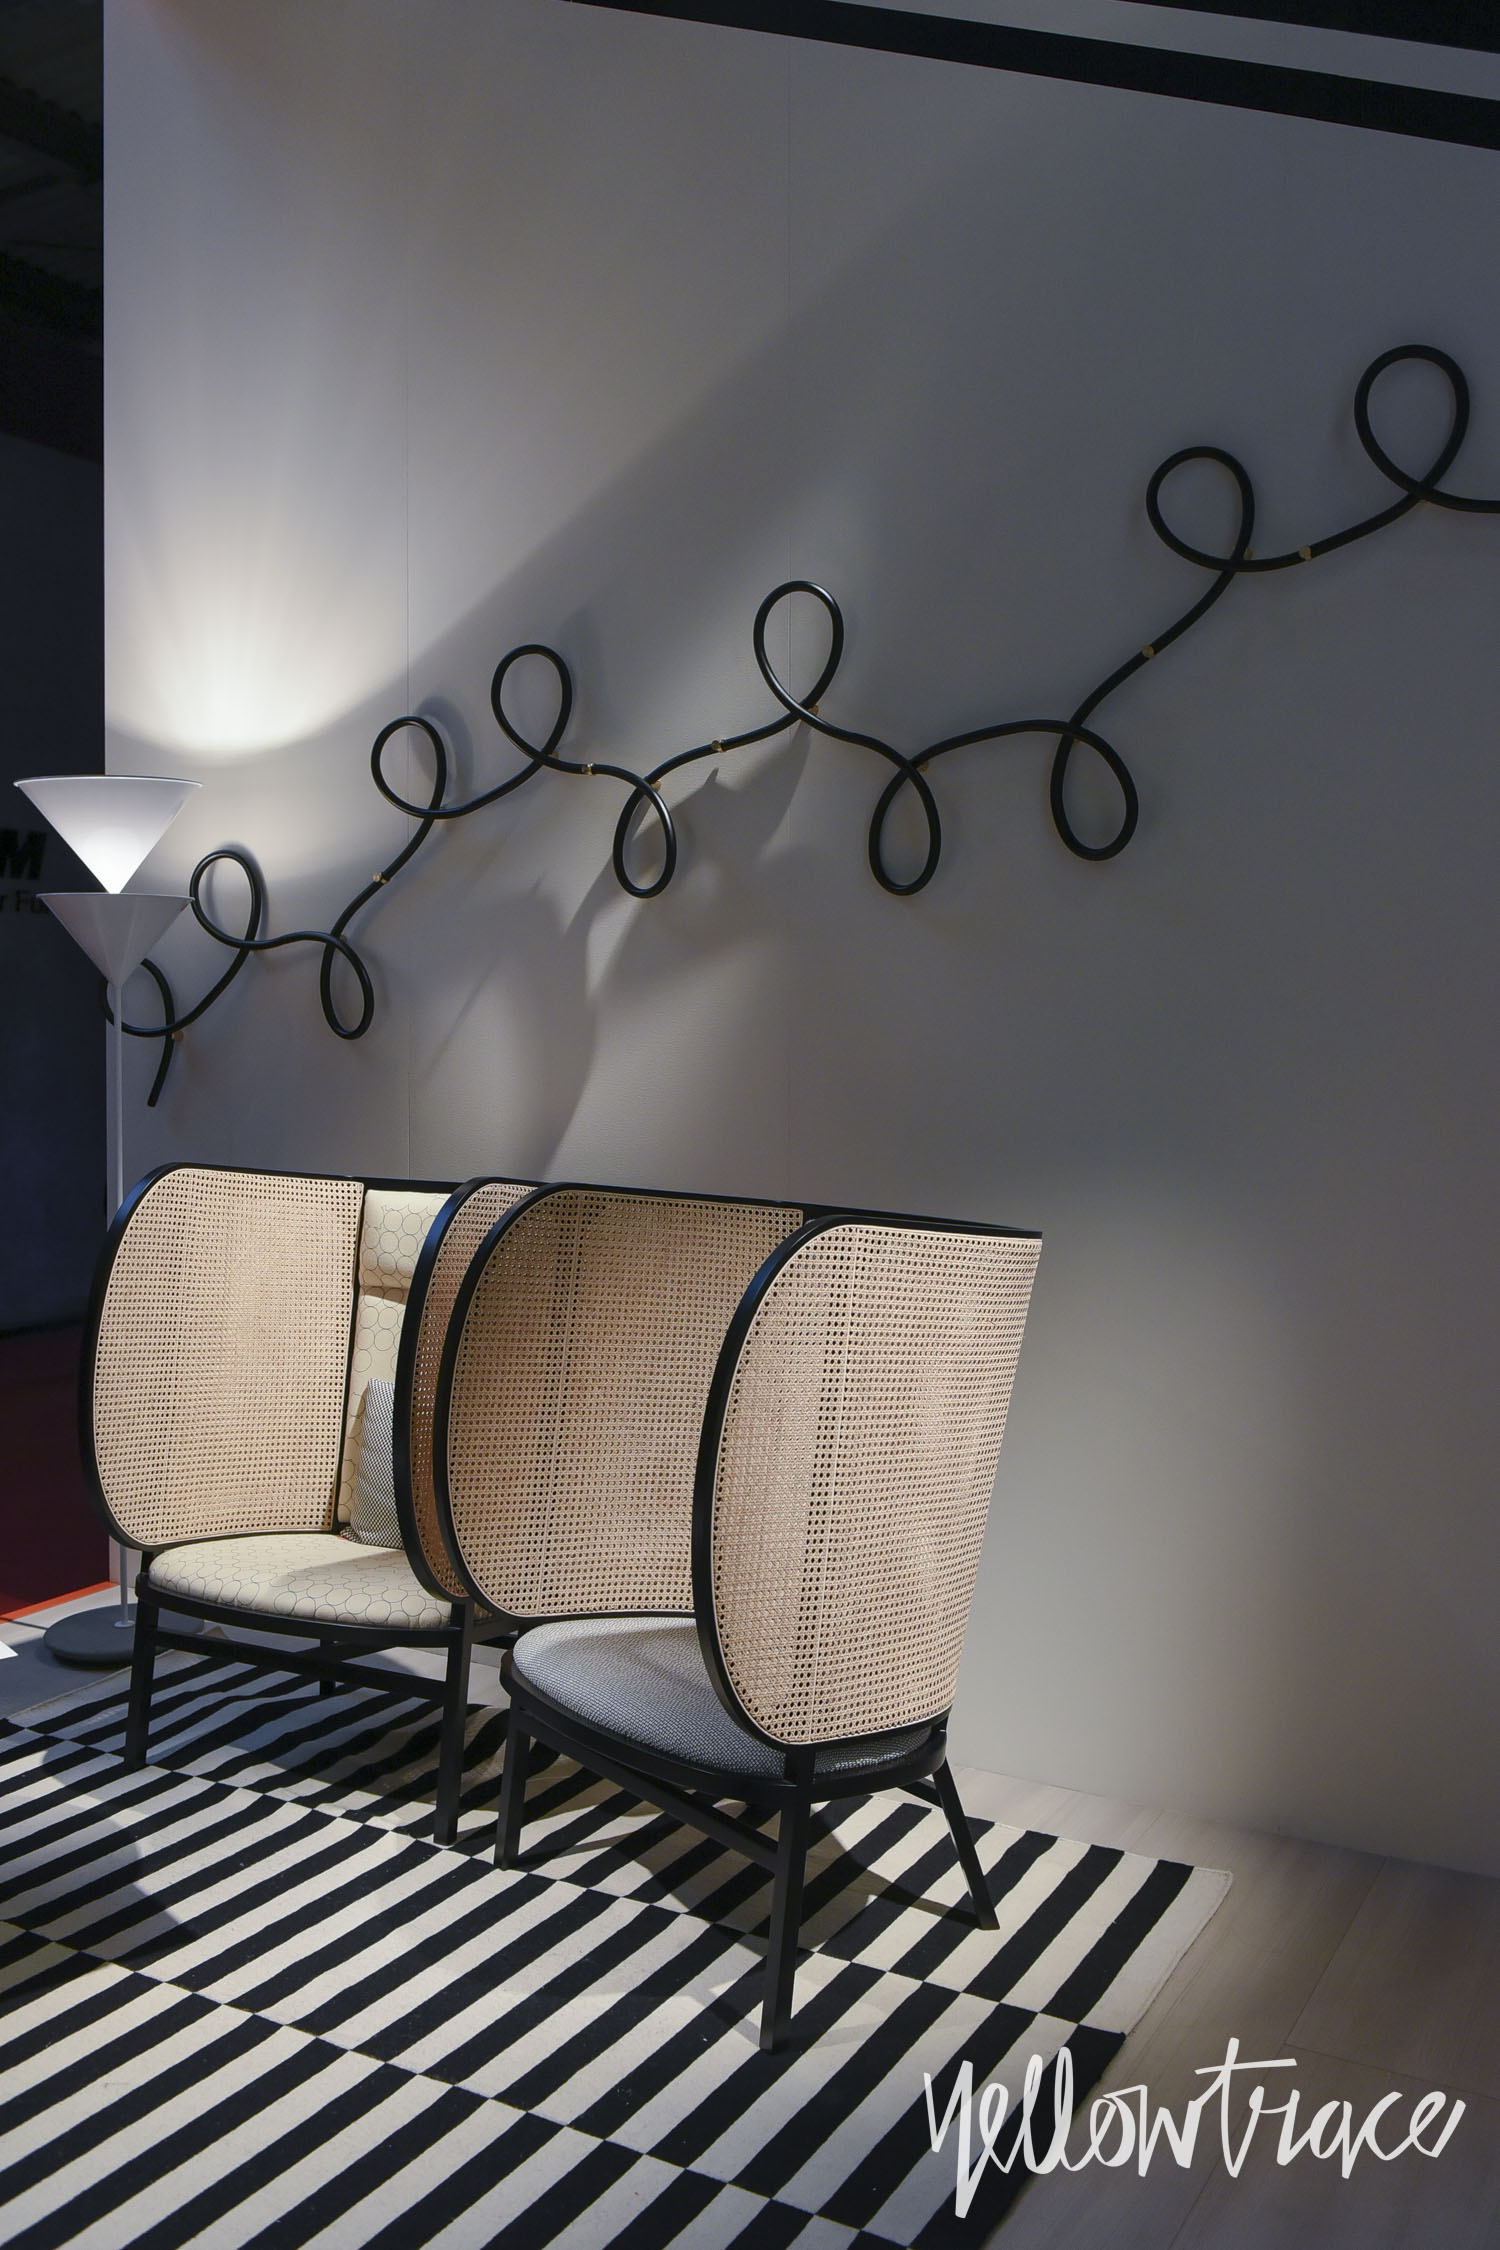 Gebr der thonet vienna at salone del mobile milano 2016 for Salone del mobile 2016 highlights